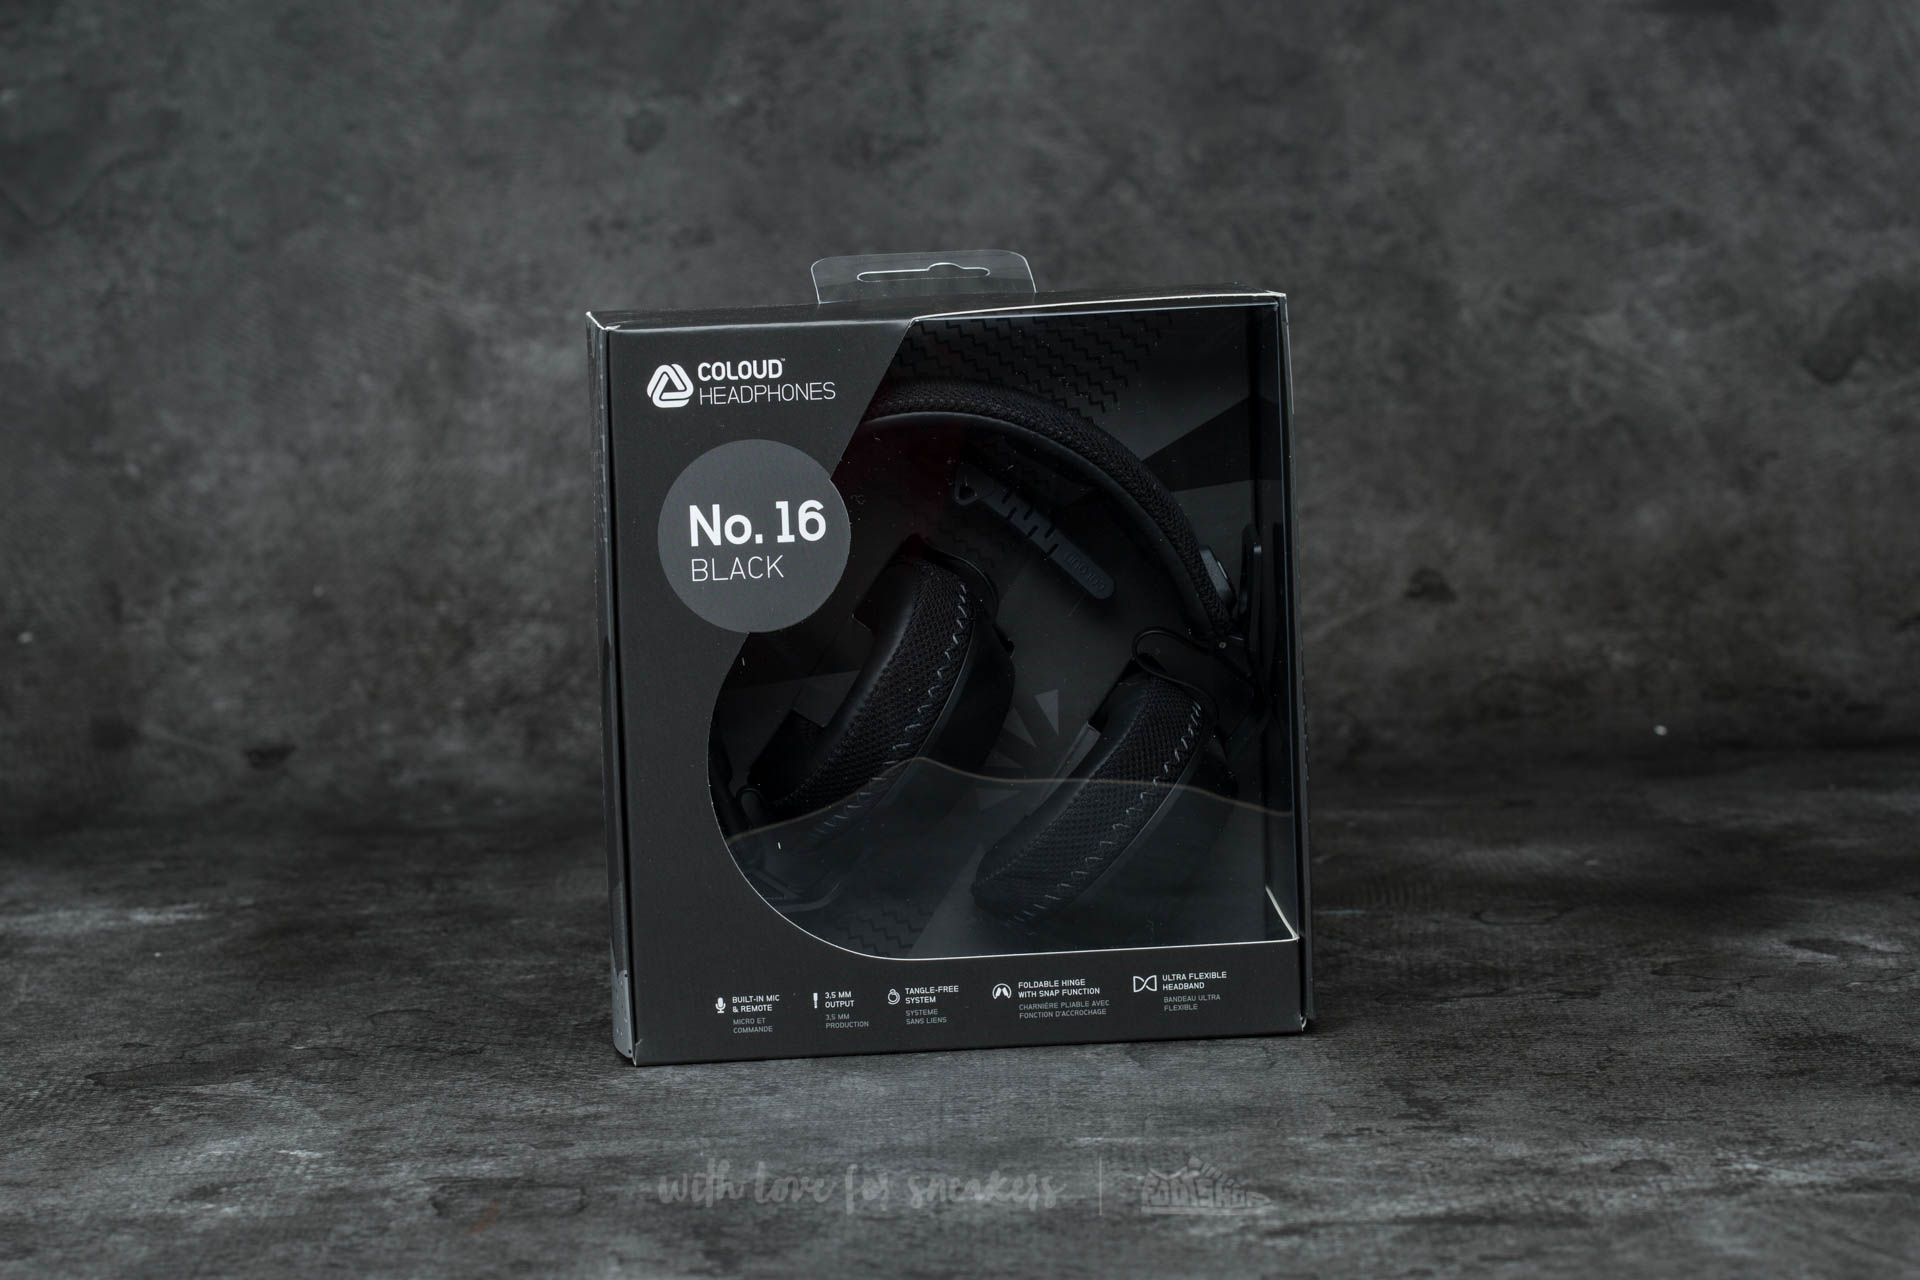 Coloud No. 16 Headphones Black-Grey